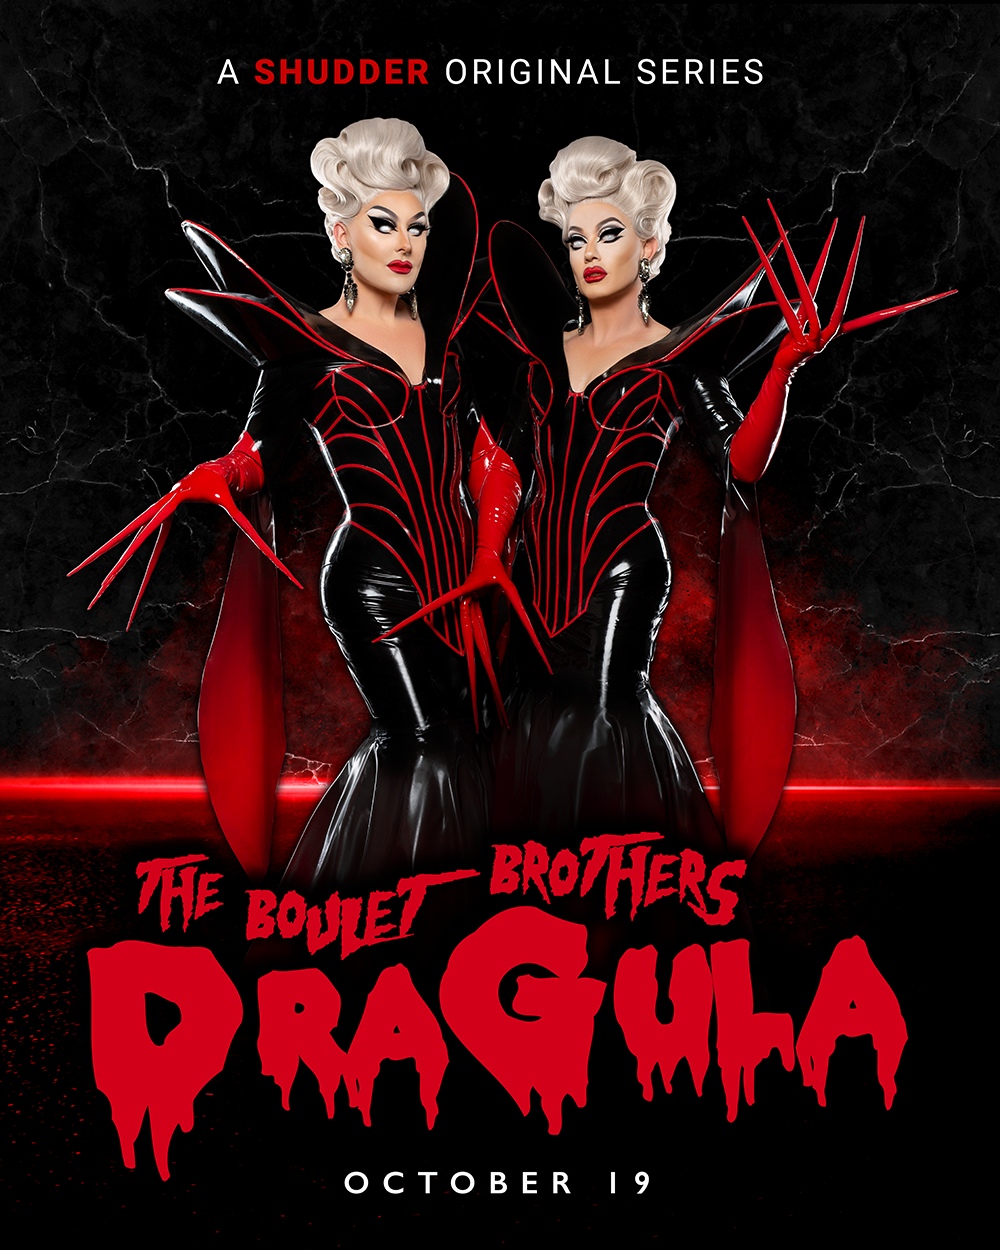 THE BOULET BROTHERS' DRAGULA Season 4 to Premiere Exclusively on Shudder (19 October)